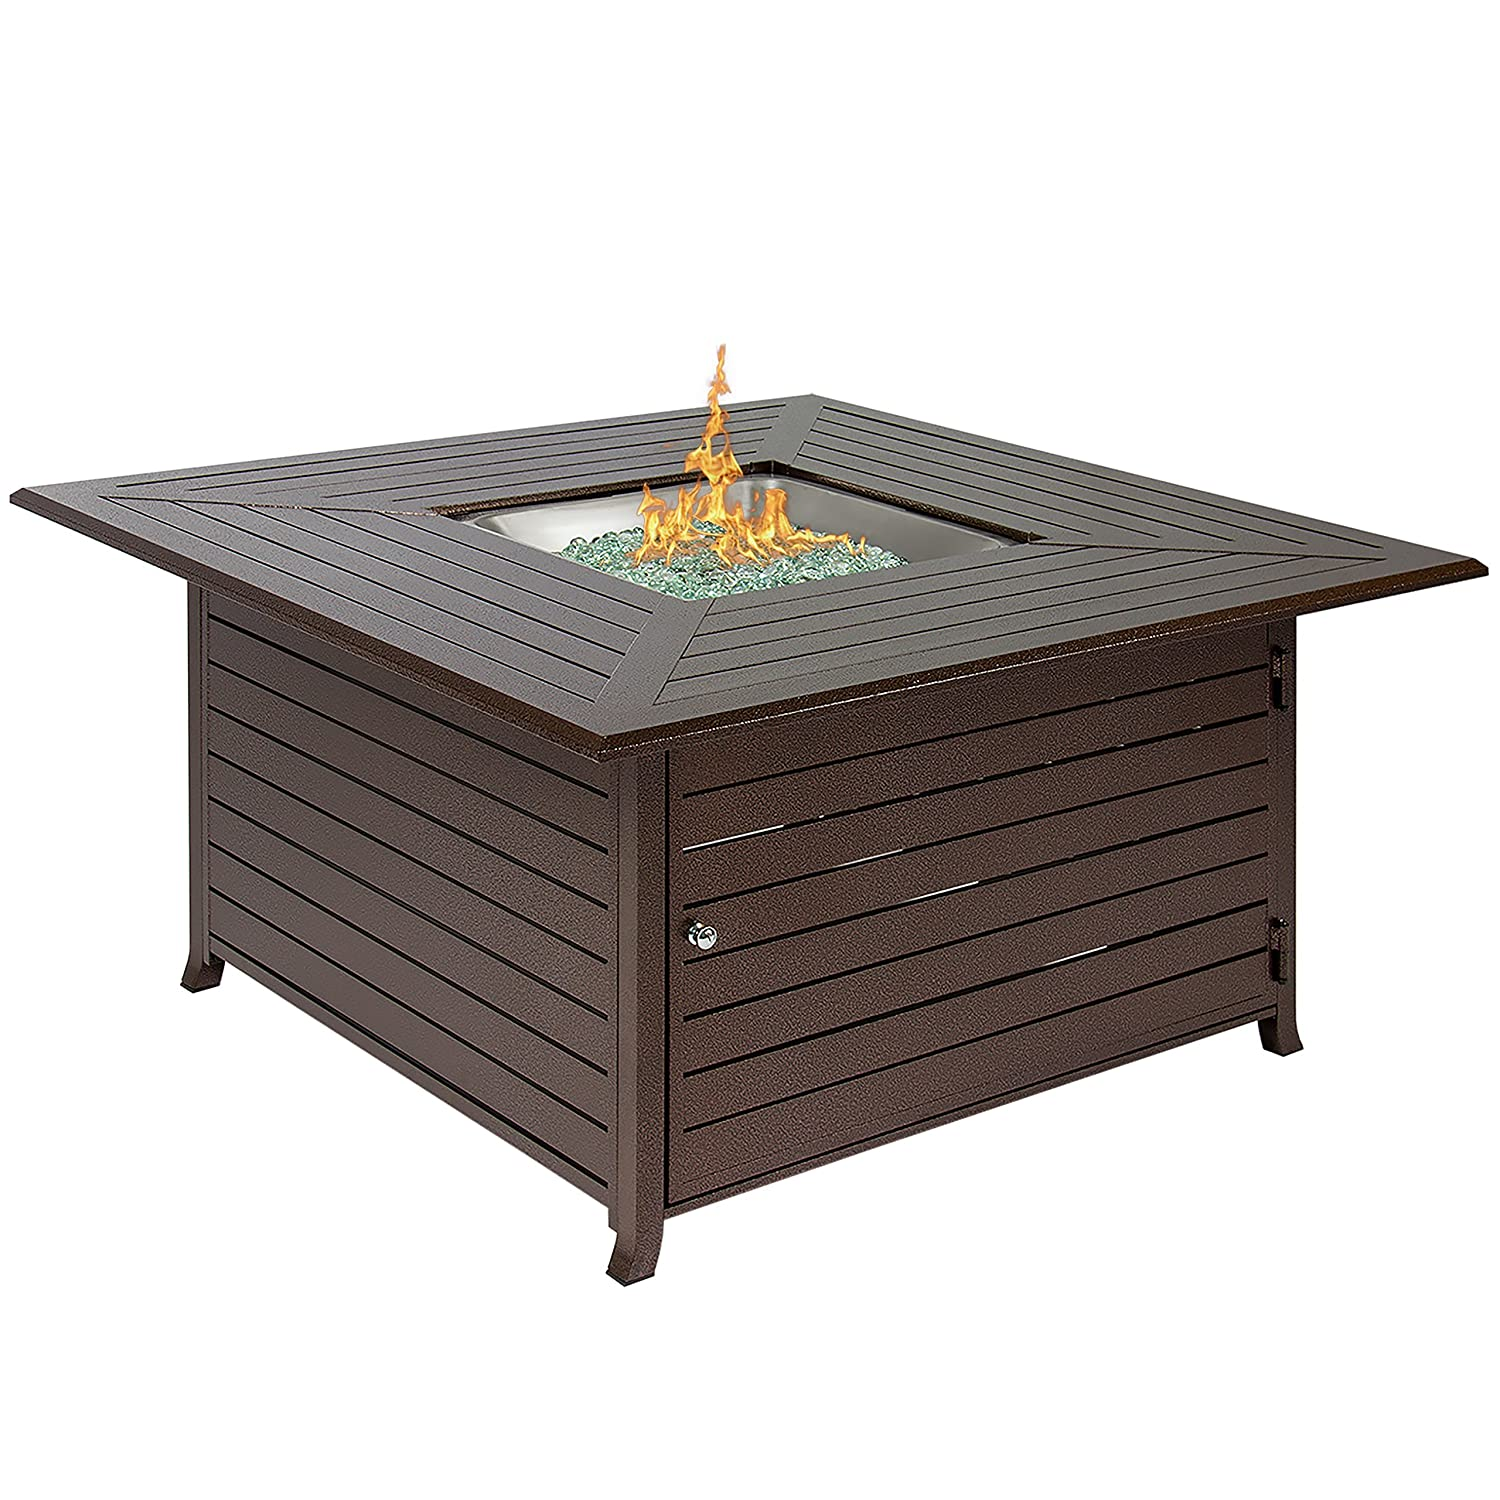 propane patio fire pit. Best Choice Products Extruded Aluminum Gas Outdoor Fire Pit Table Propane Patio